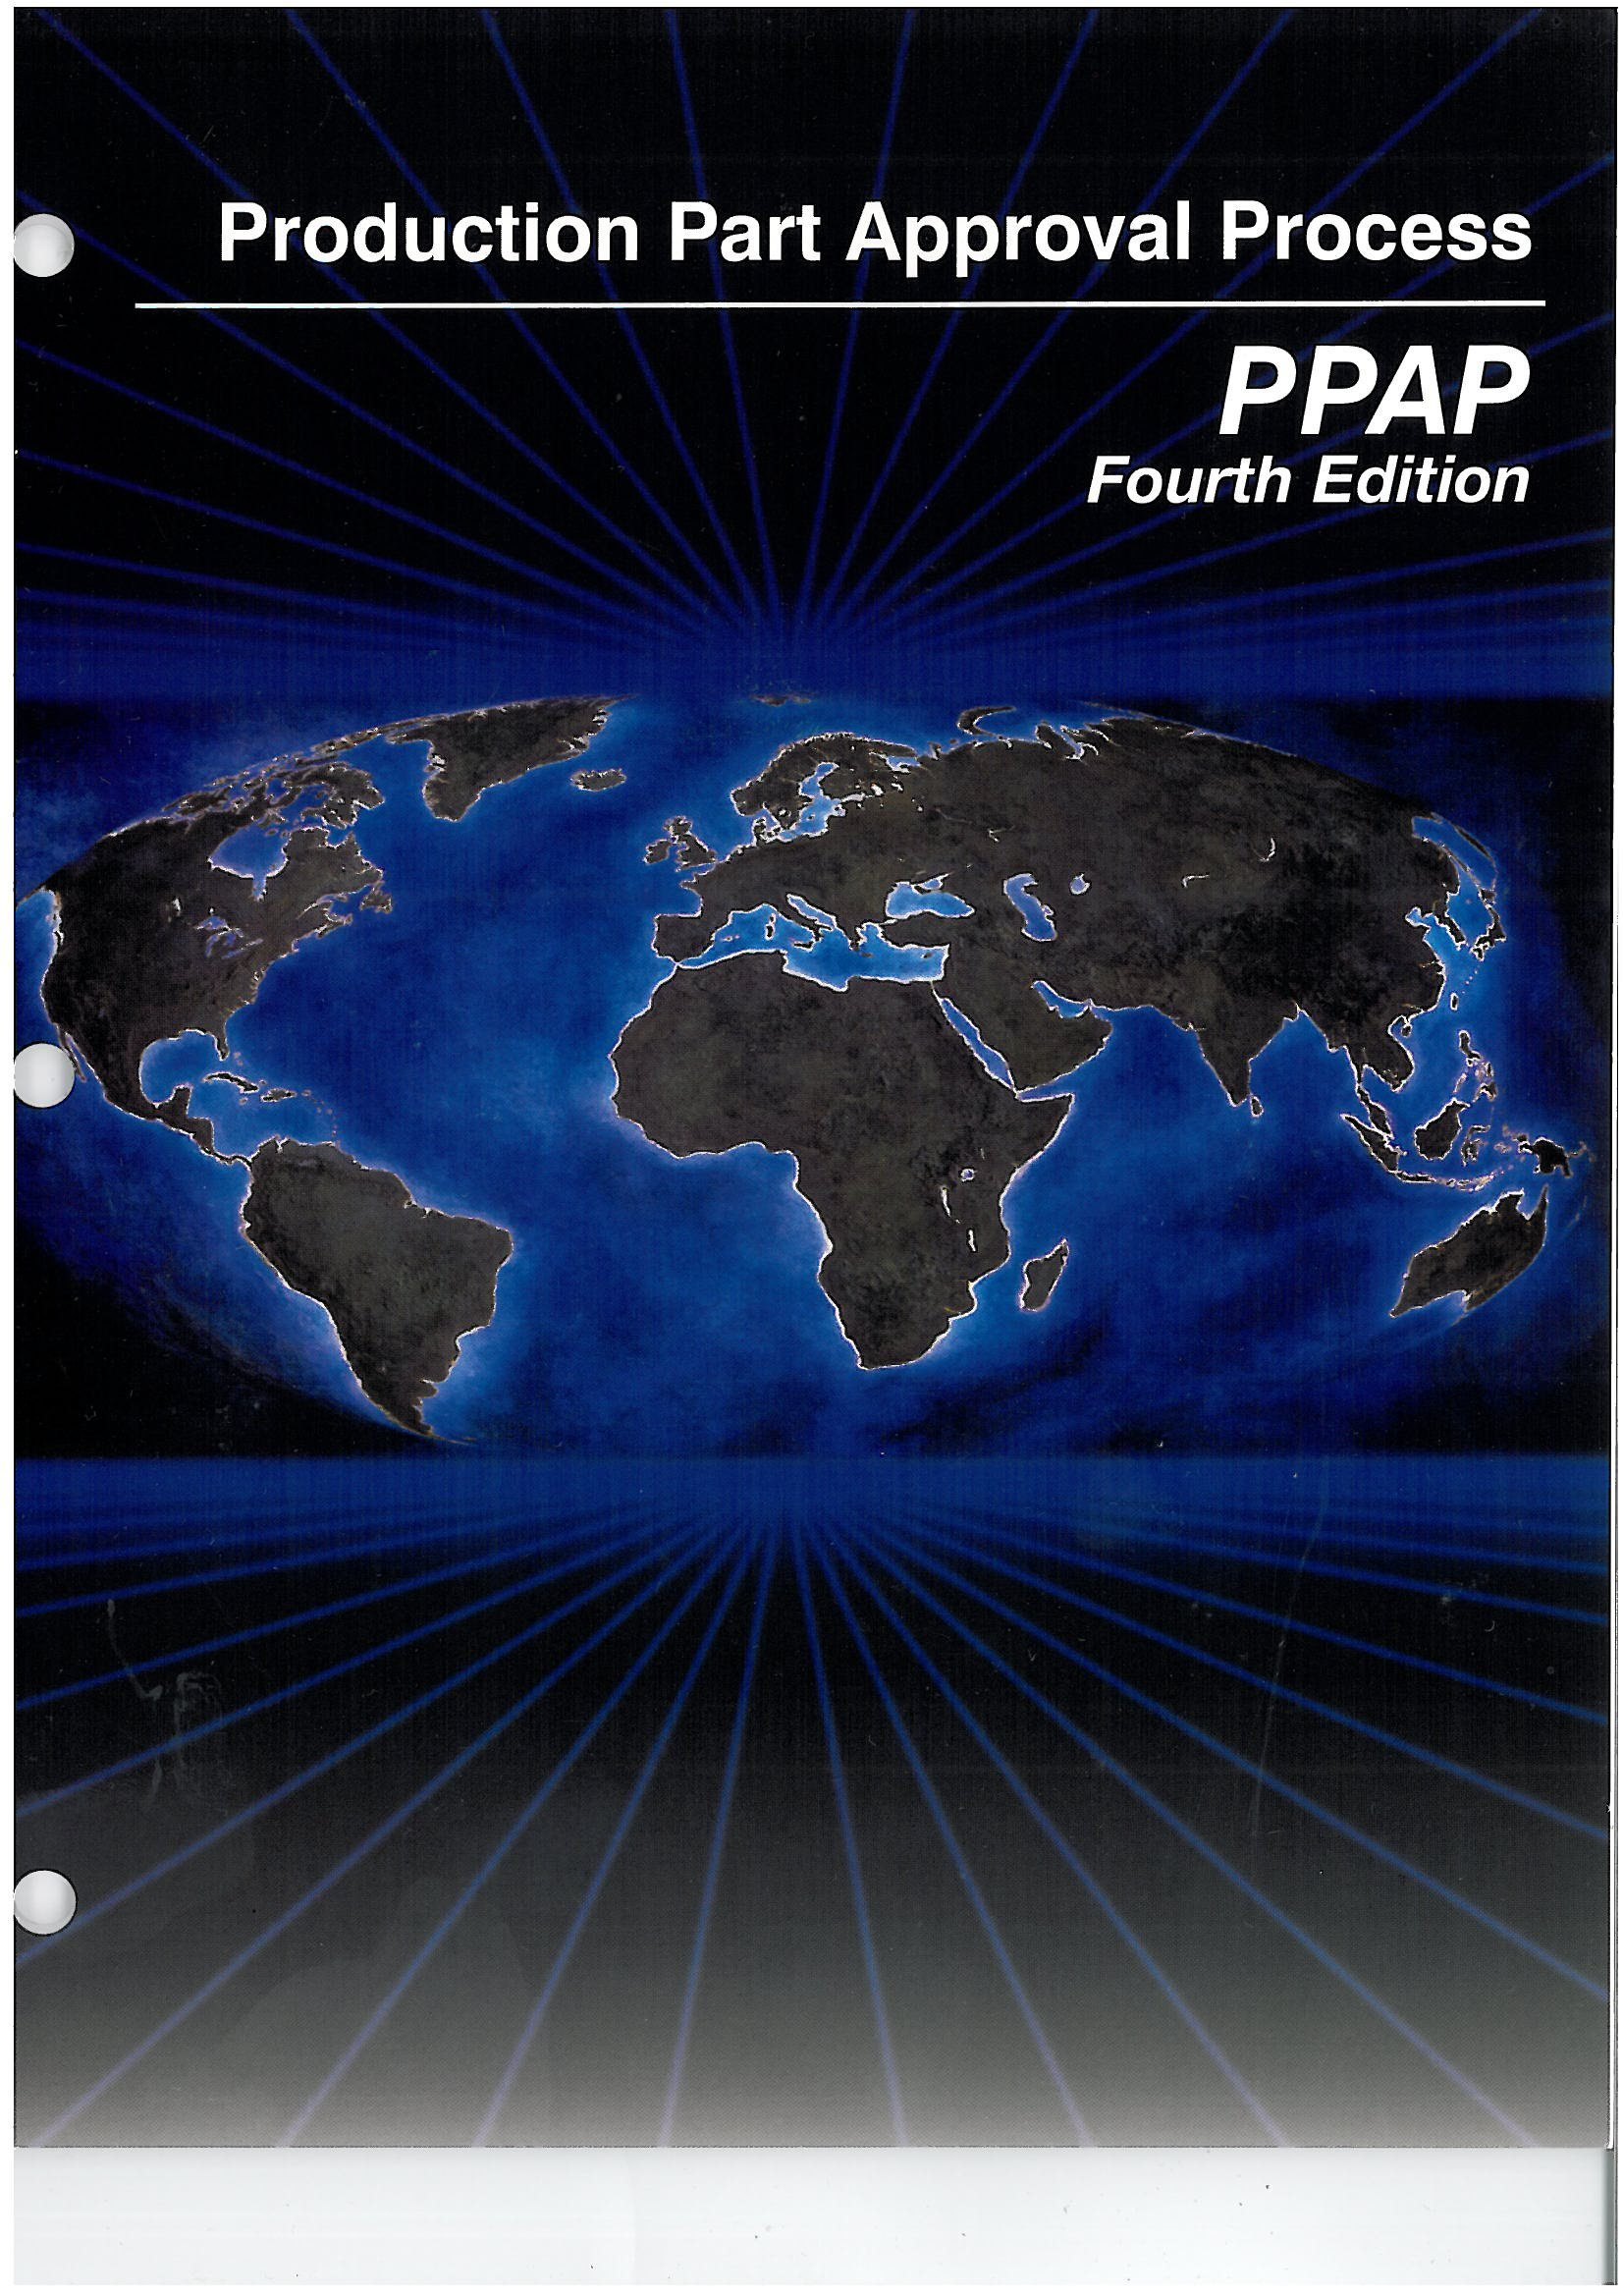 Production Part Approval Process (PPAP), 4th Edition: Amazon.co.uk:  9781605340937: Books